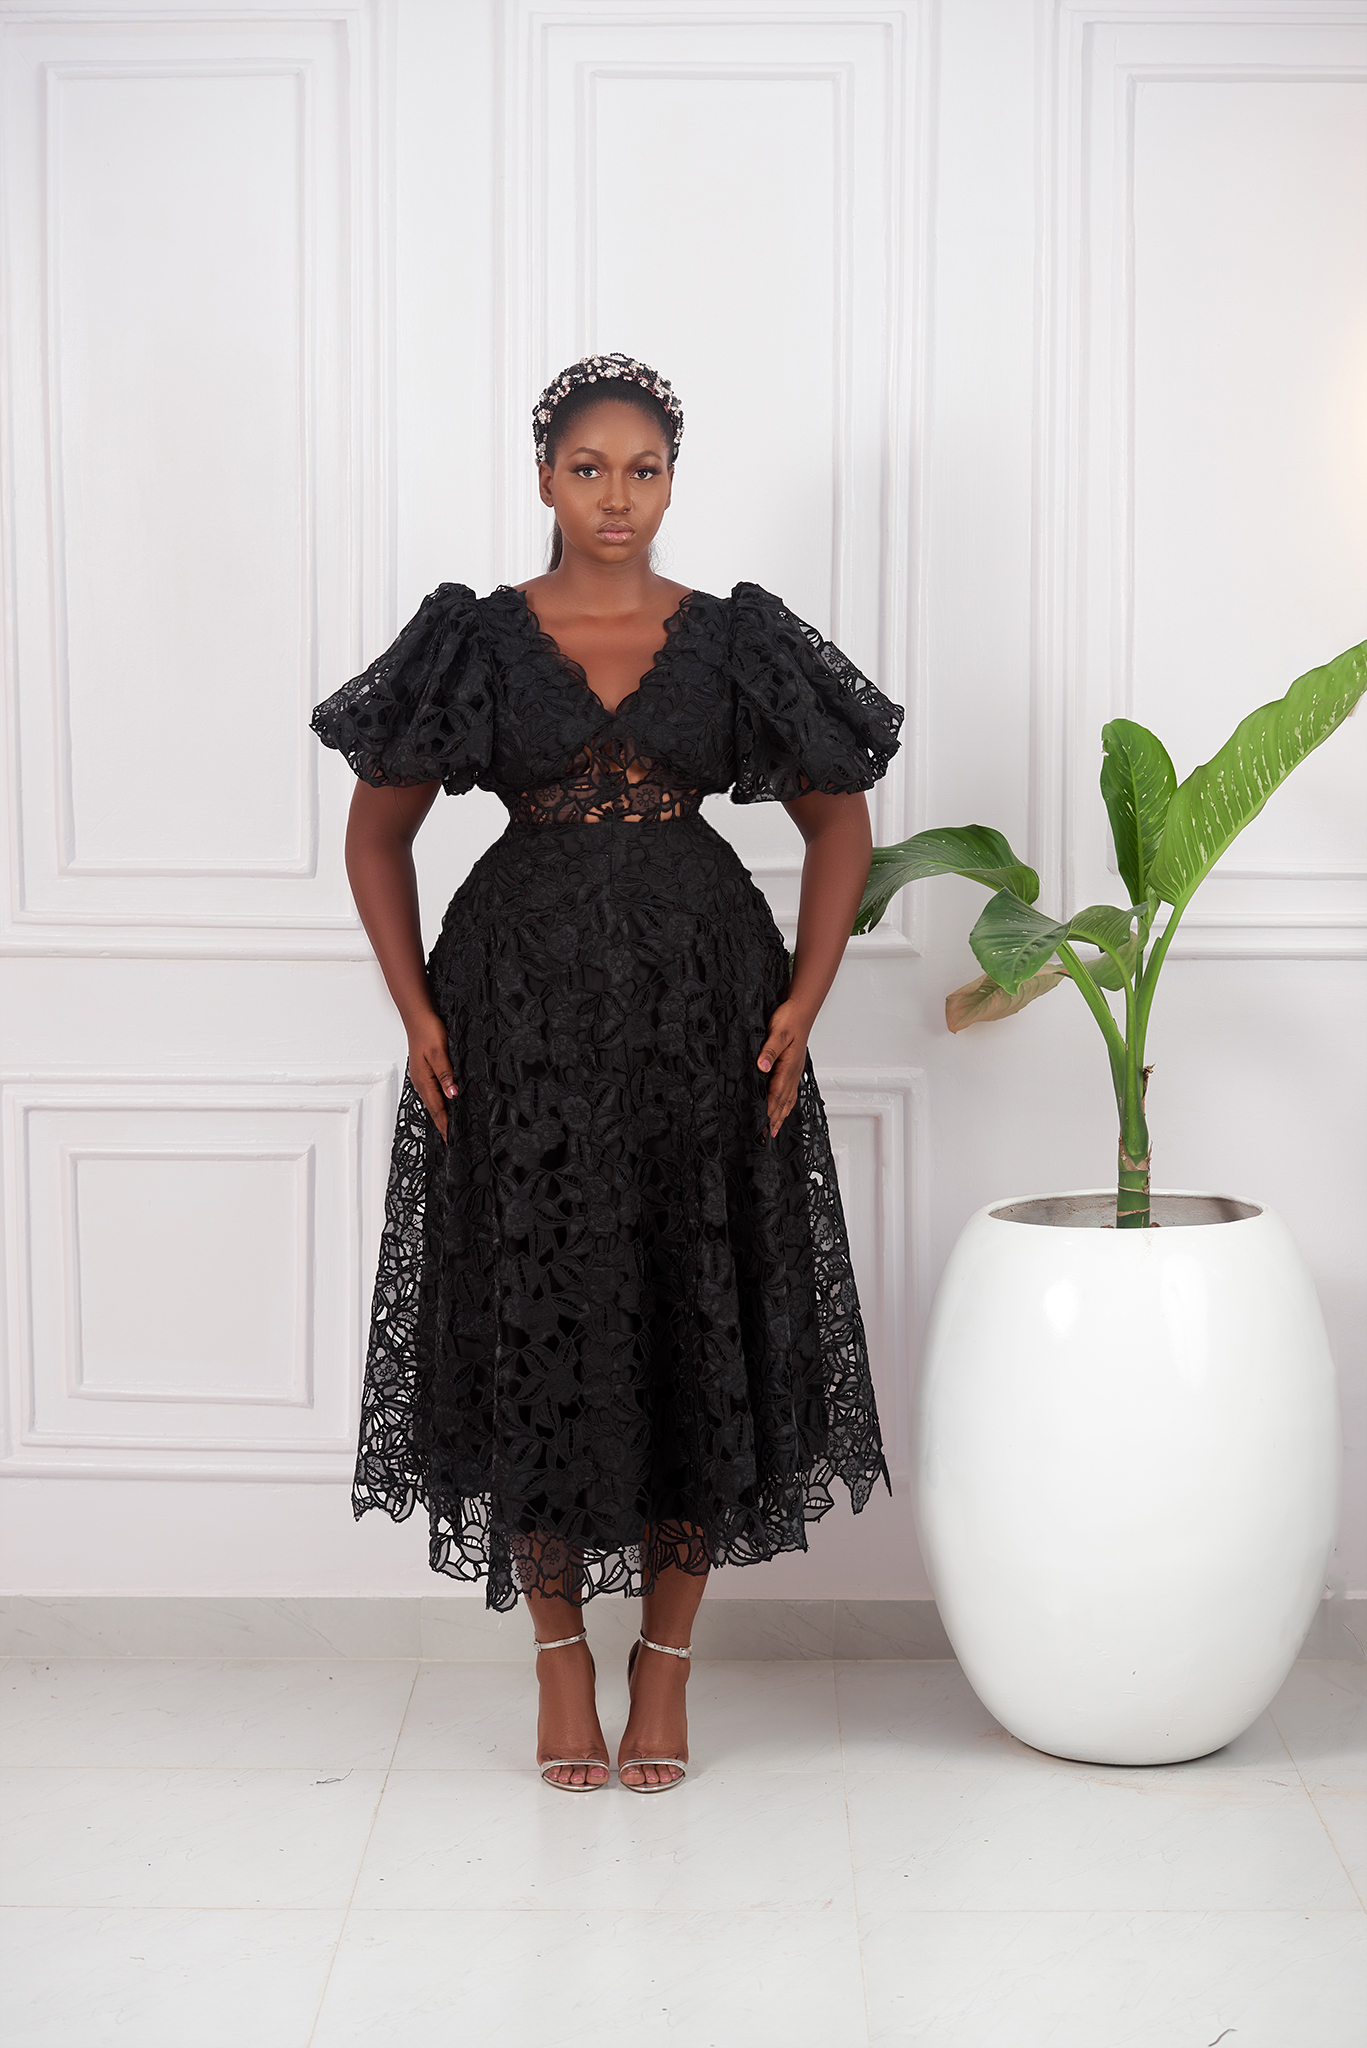 The 'Ire' Lace Dress